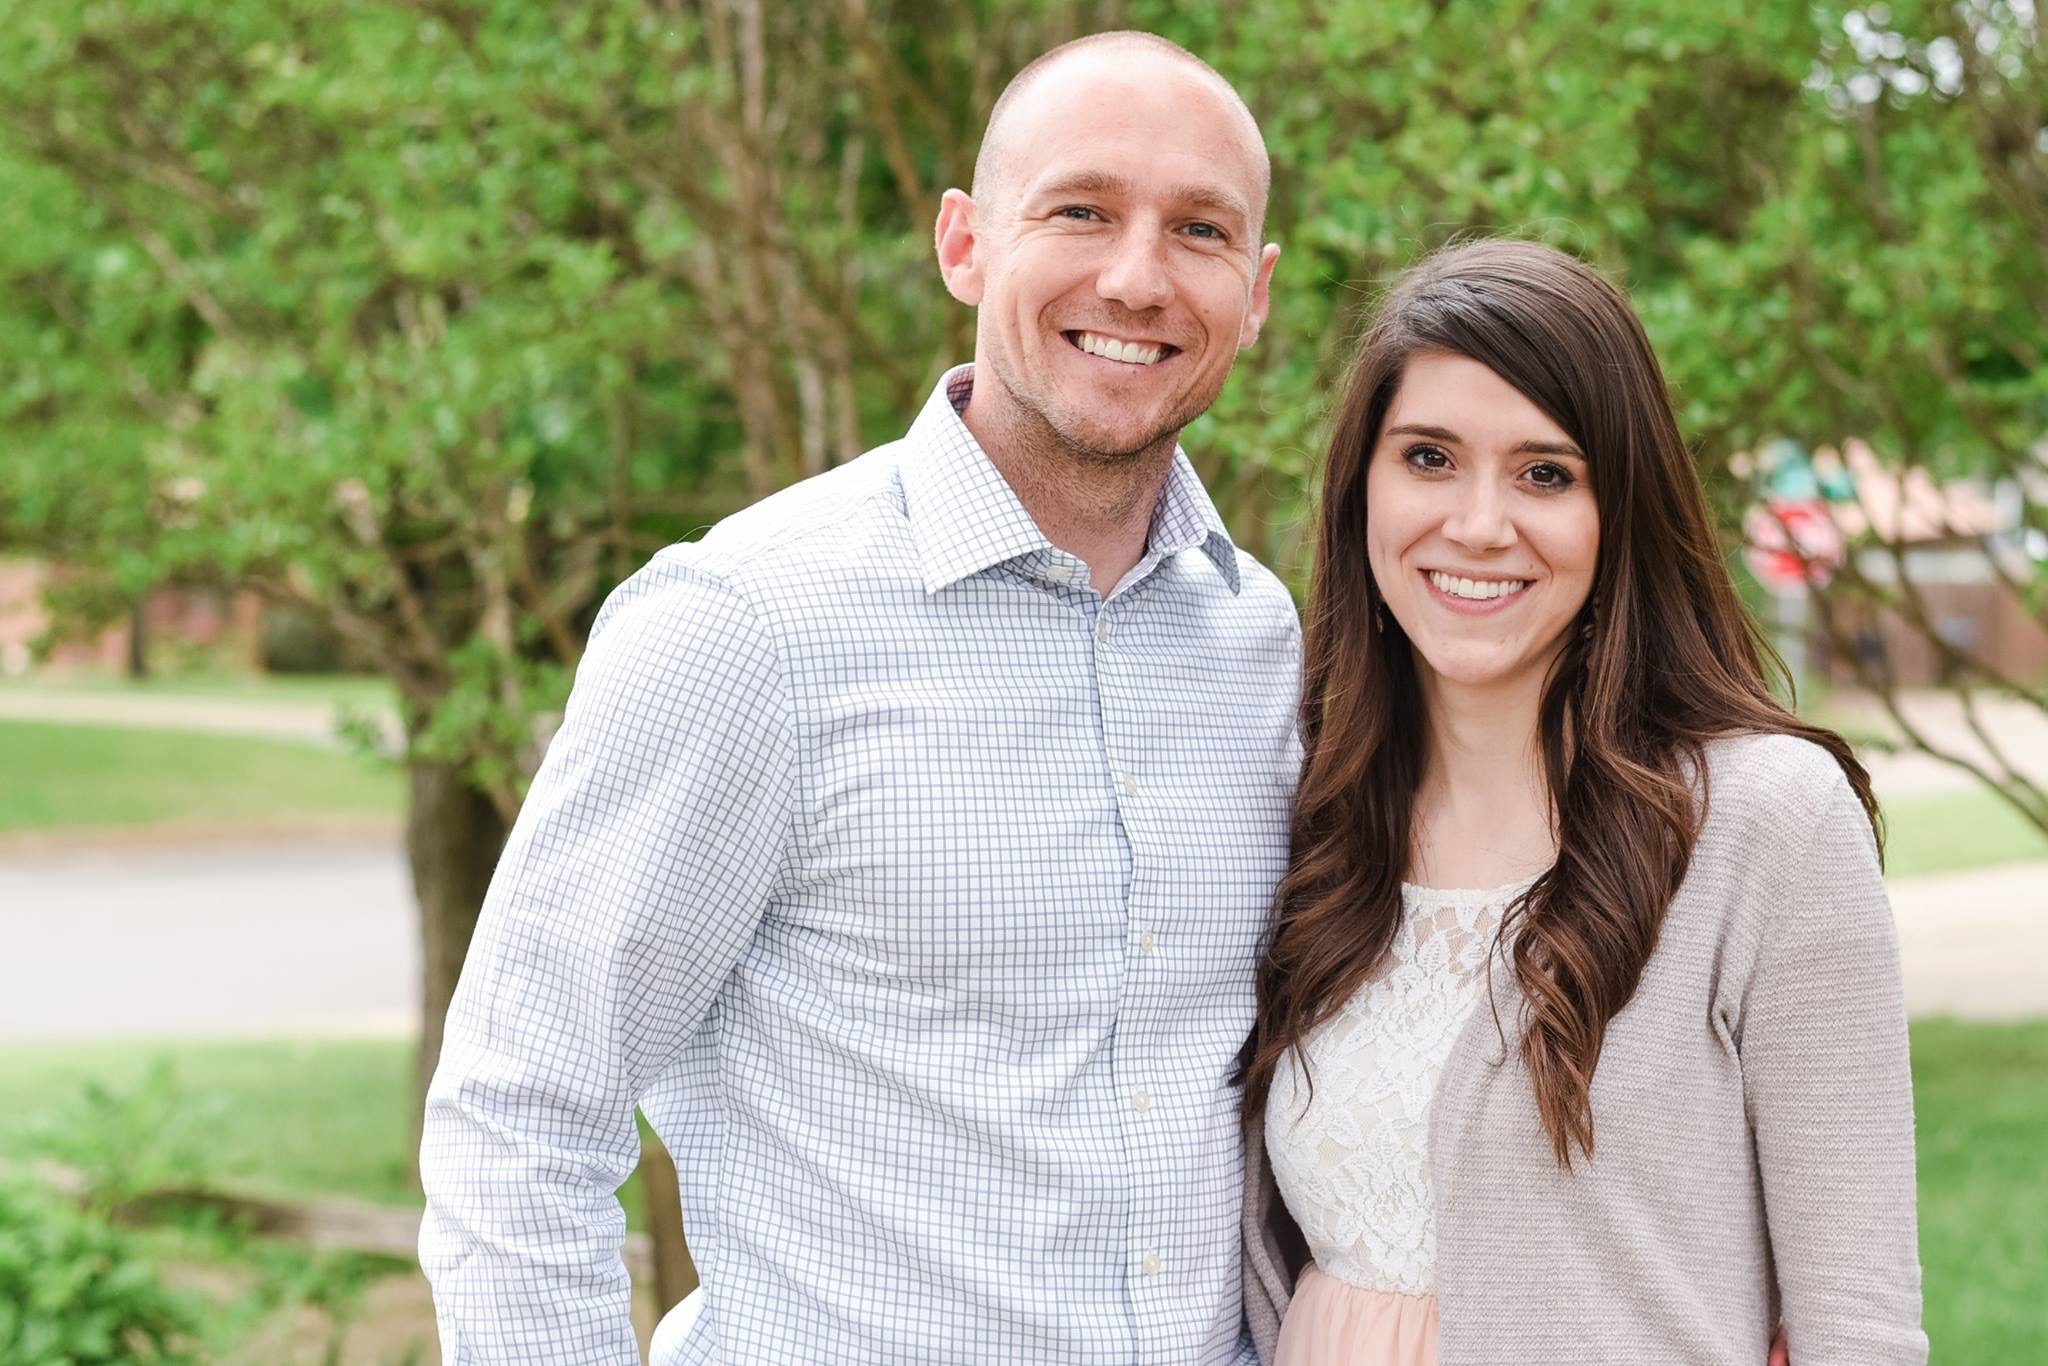 Clint & Lauren Grimes - We are thrilled to announce that Clint & Lauren will be joining our pastoral team from January 2018.